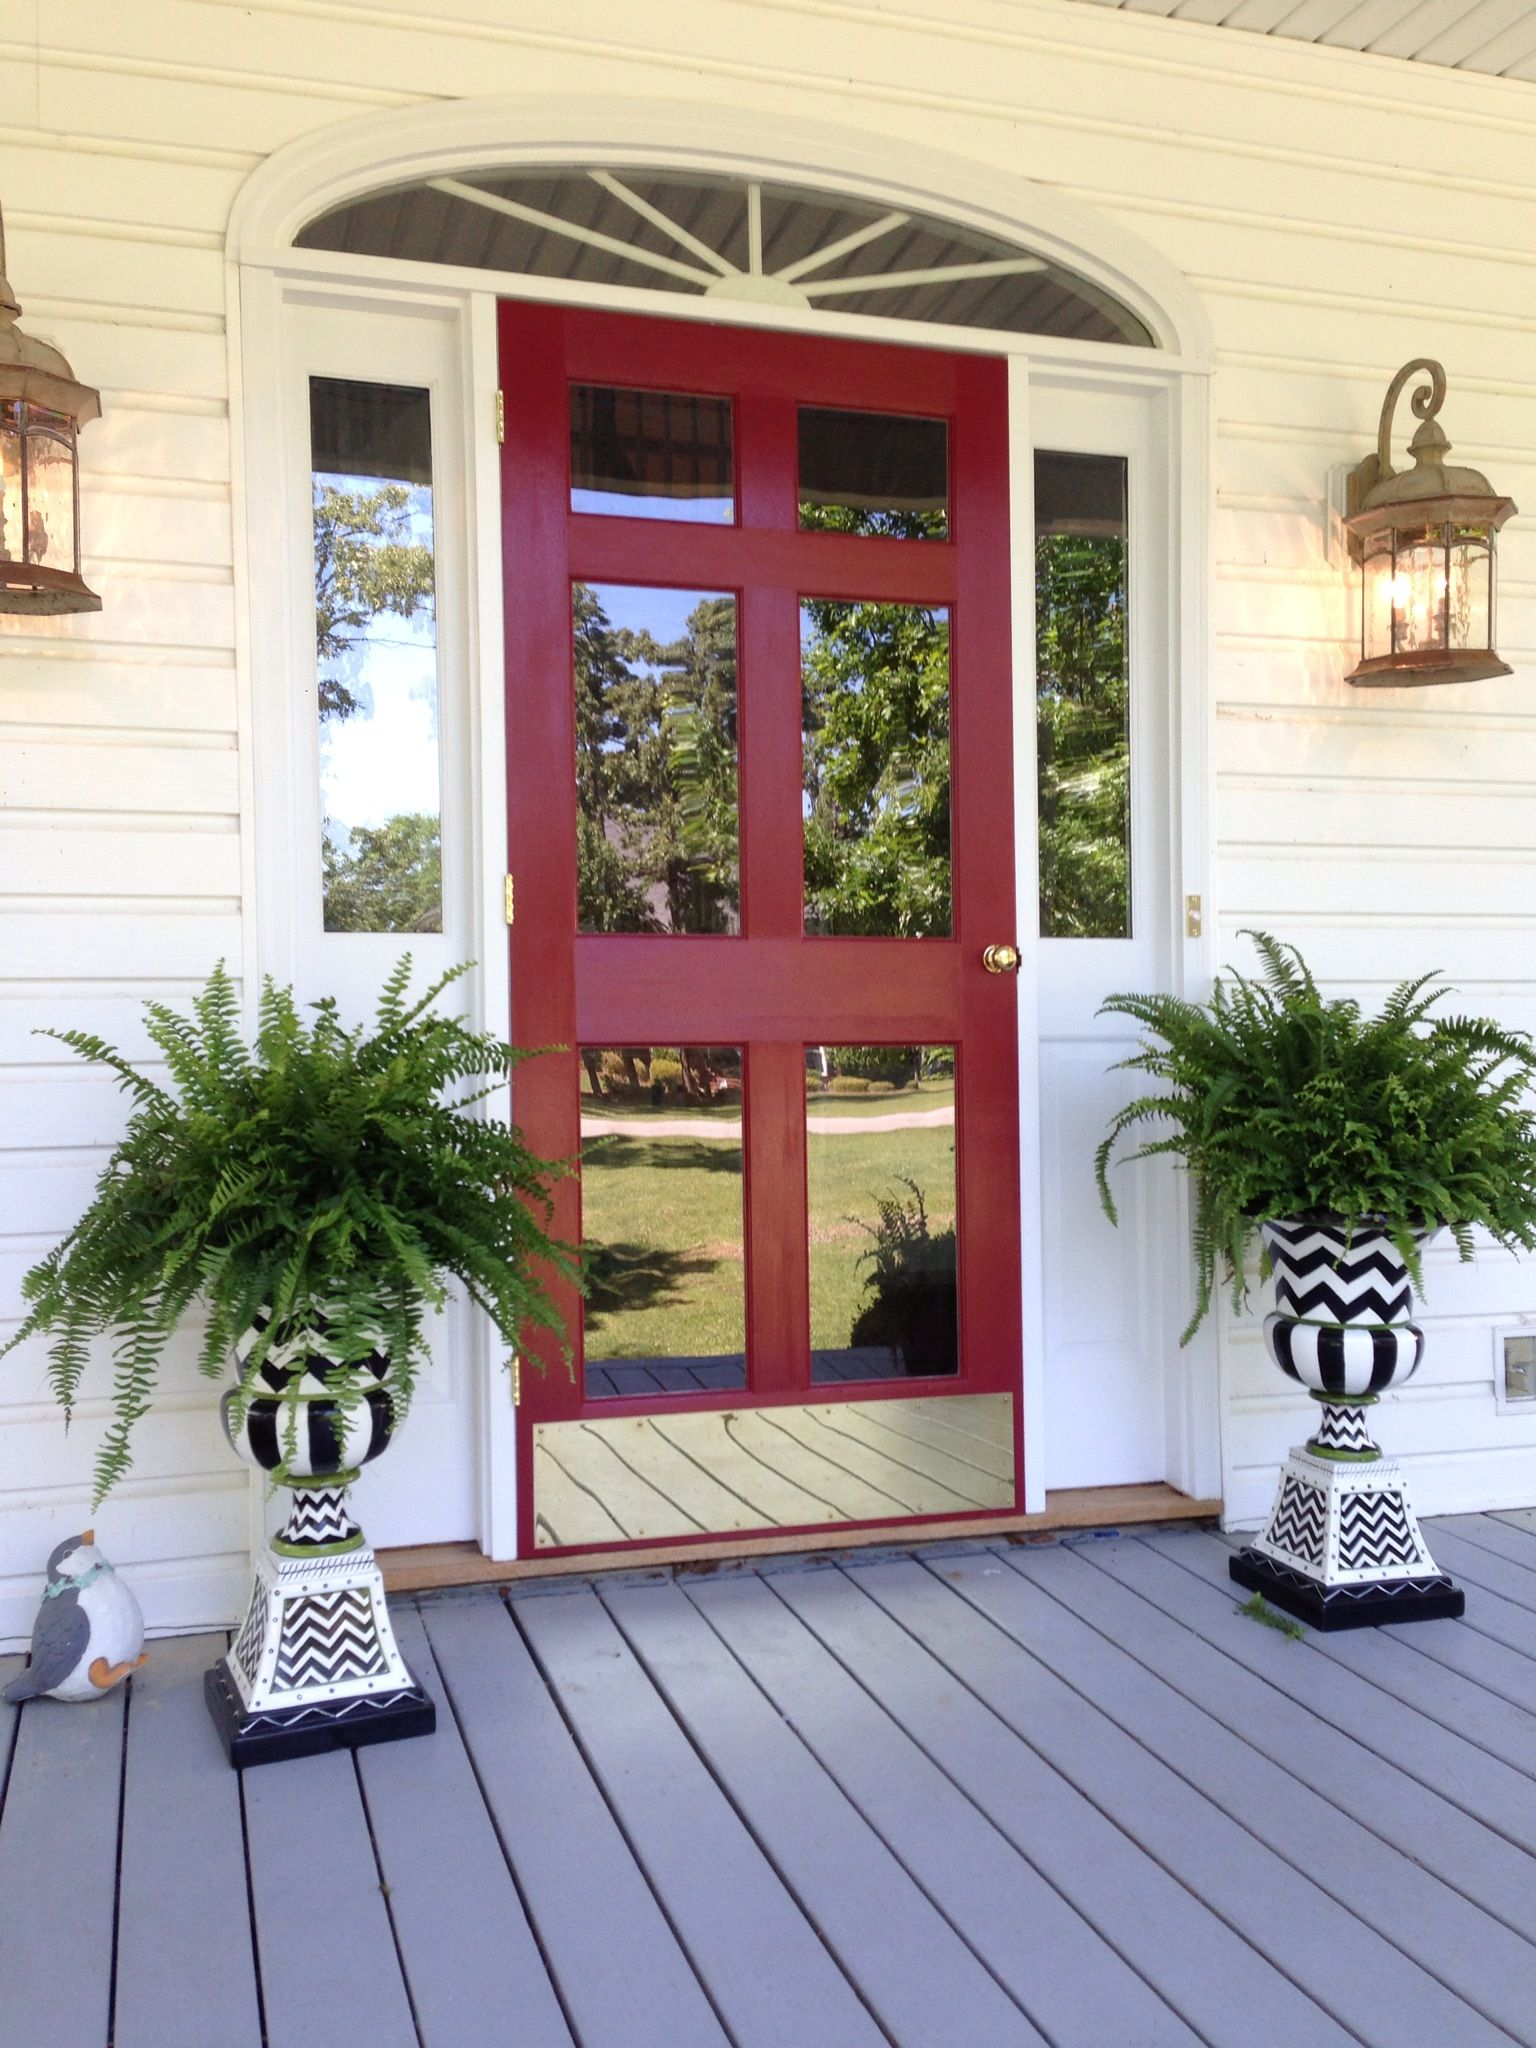 Front door and storm door painted red jle did this for a customer